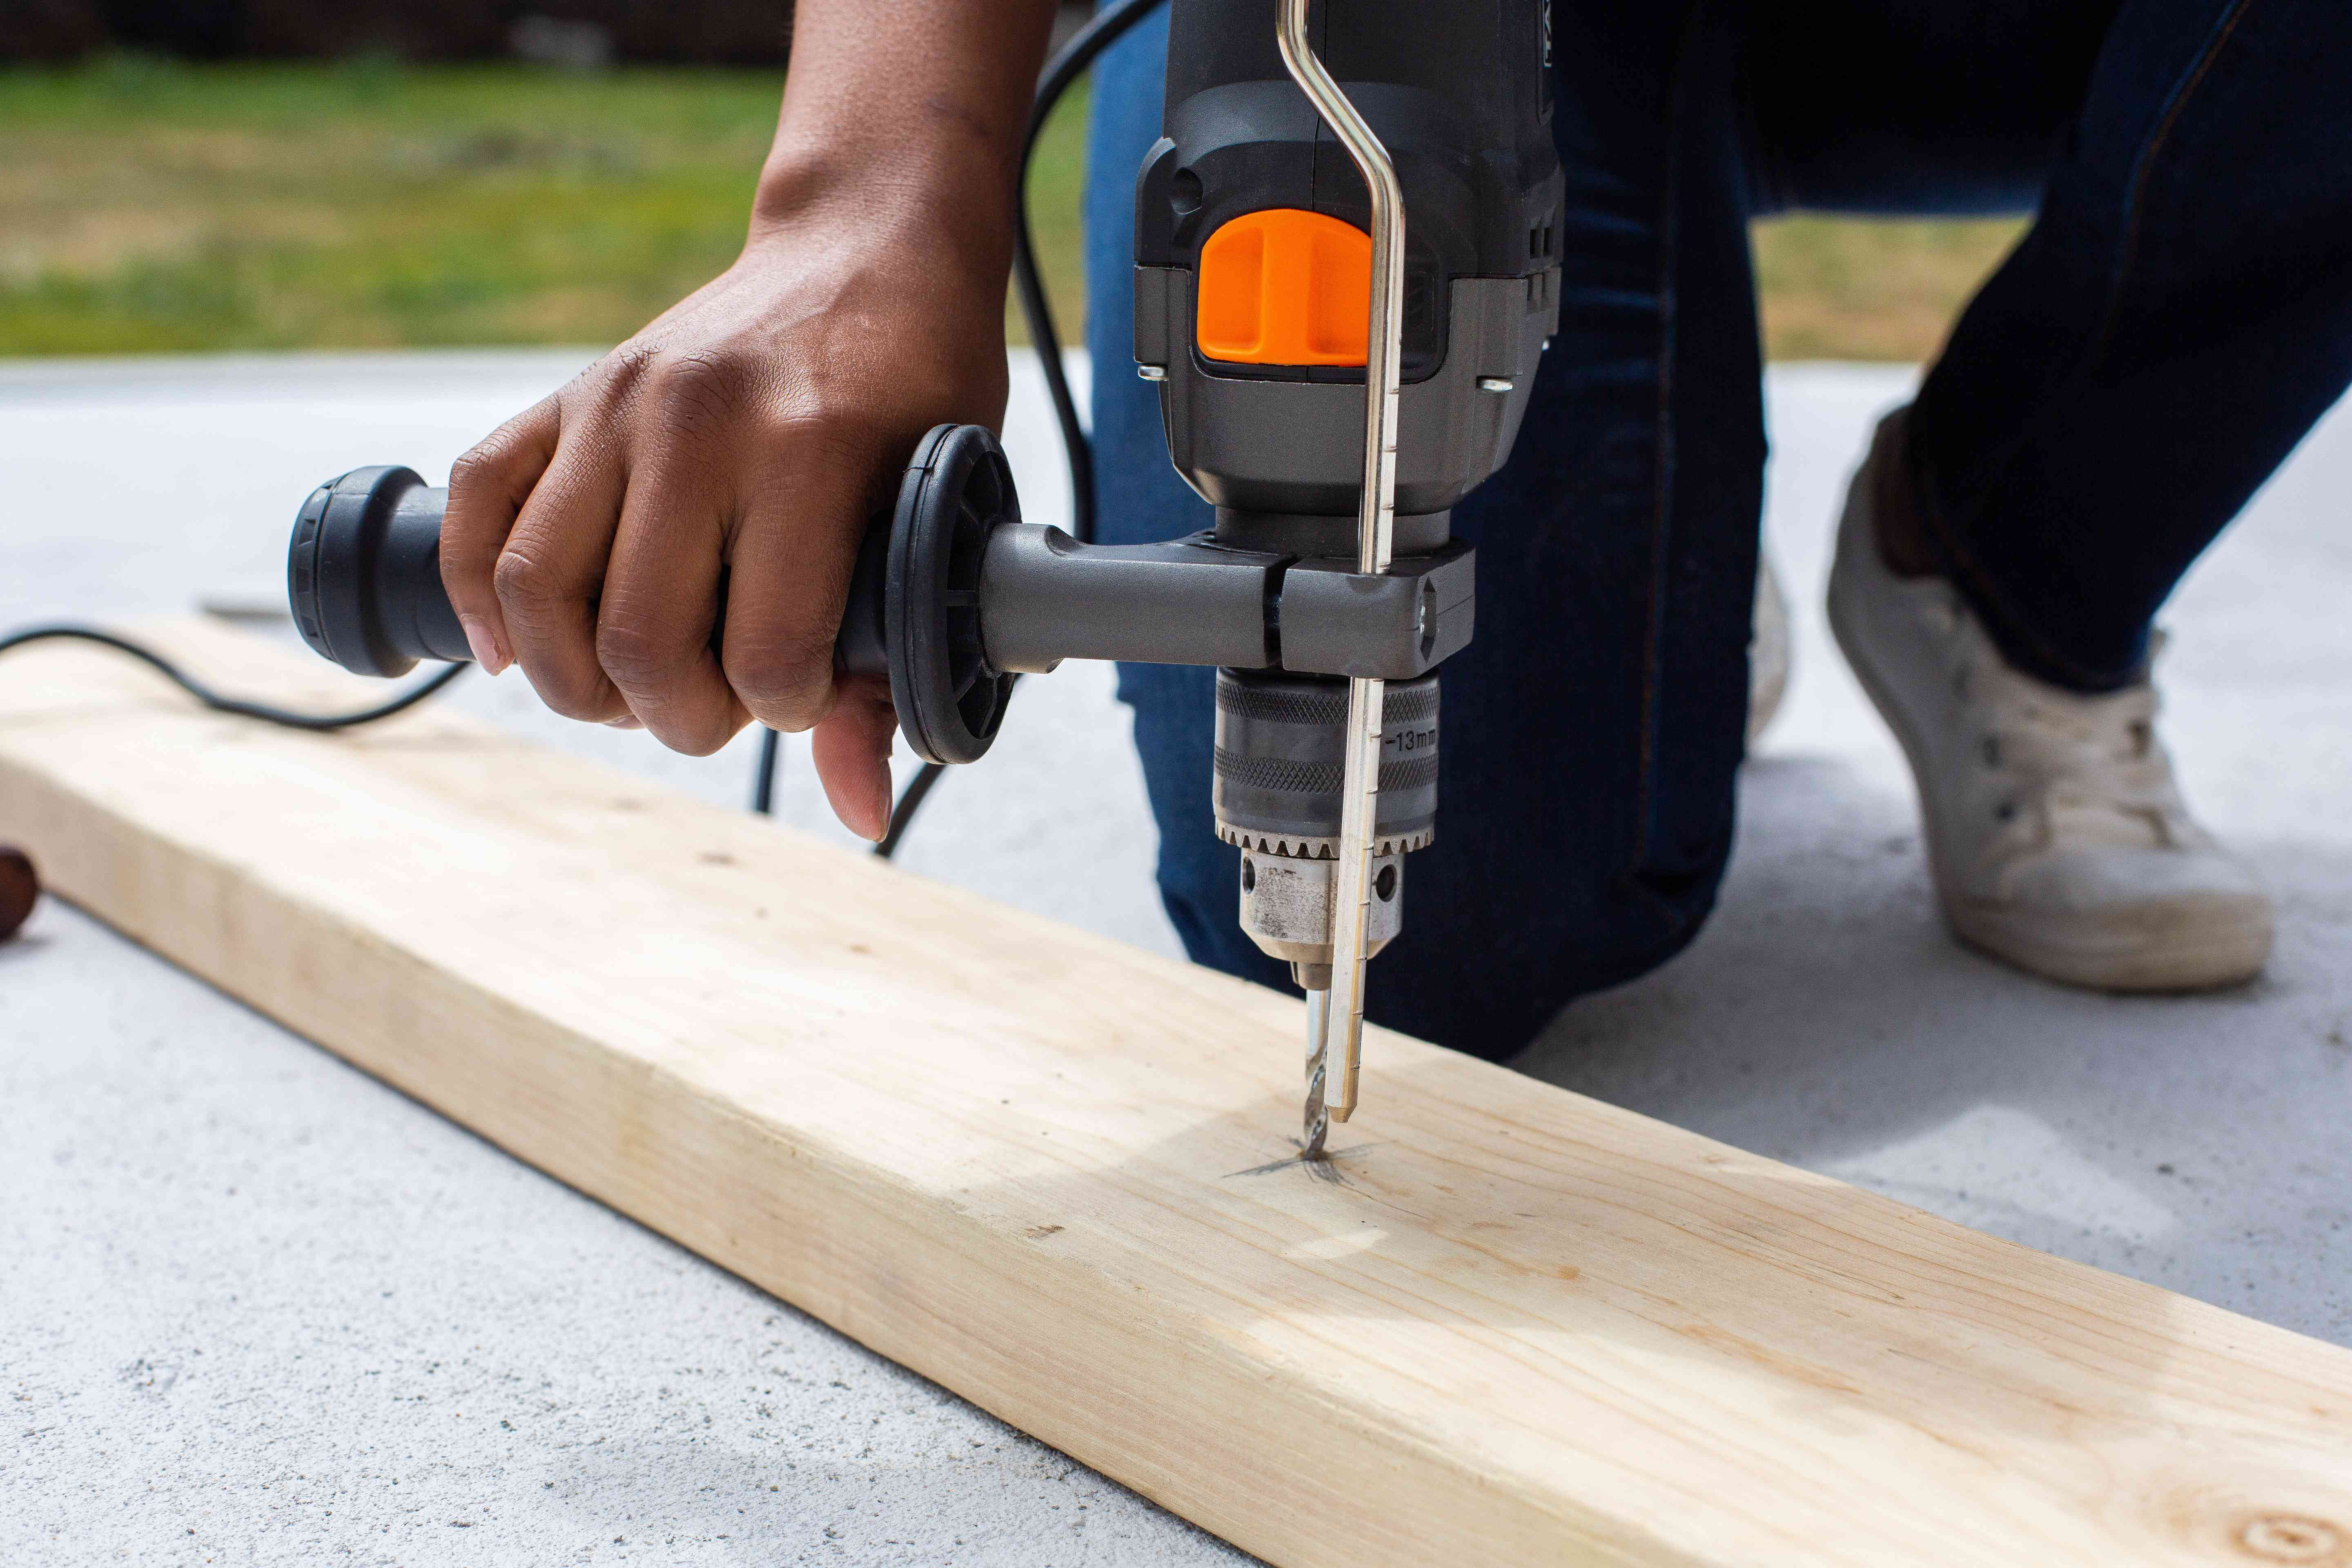 Pilot holes drilled into wood board with a hammer drill